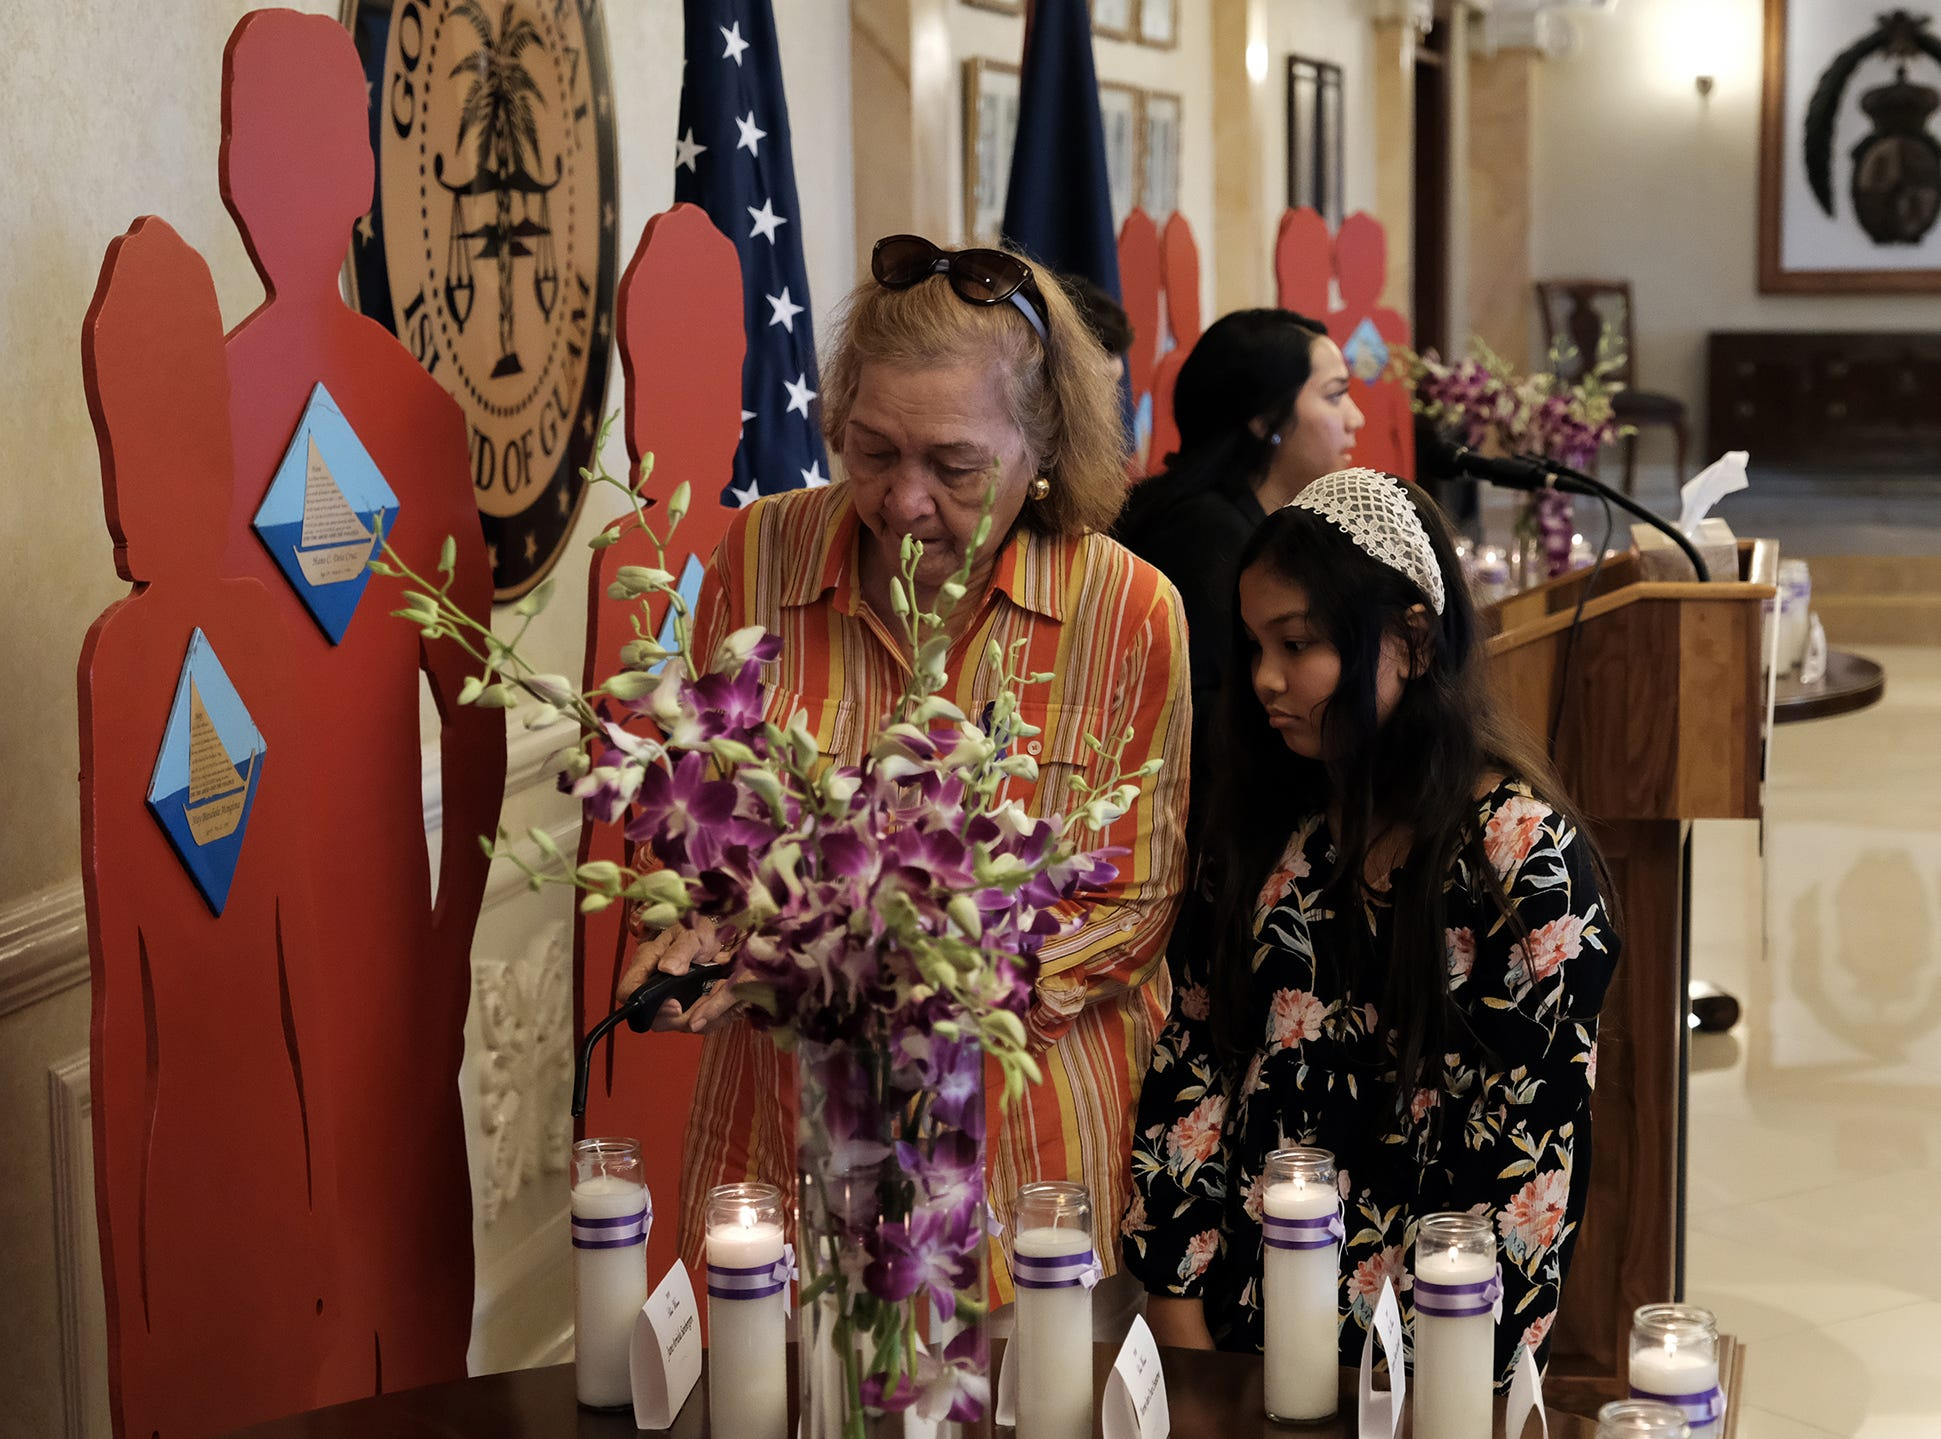 Ana D. Cruz and Kiersten Fernandez, 9, light a candle for June Arriola Sanbergen at the 2018 Silent Witness Ceremony at Government House Oct. 19, 2018.